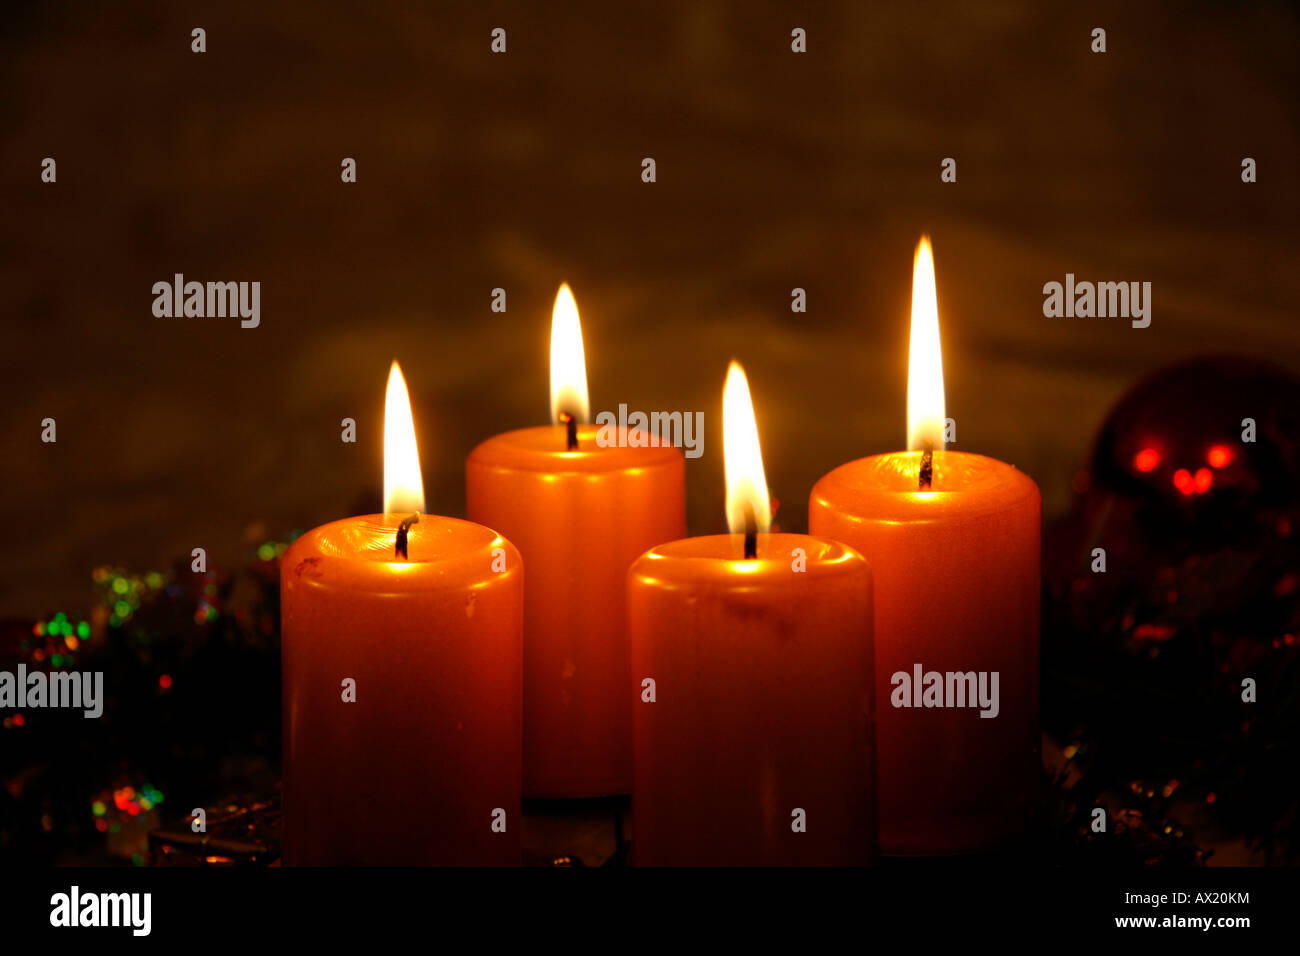 advent wreath four candles on stockfotos advent wreath four candles on bilder alamy. Black Bedroom Furniture Sets. Home Design Ideas